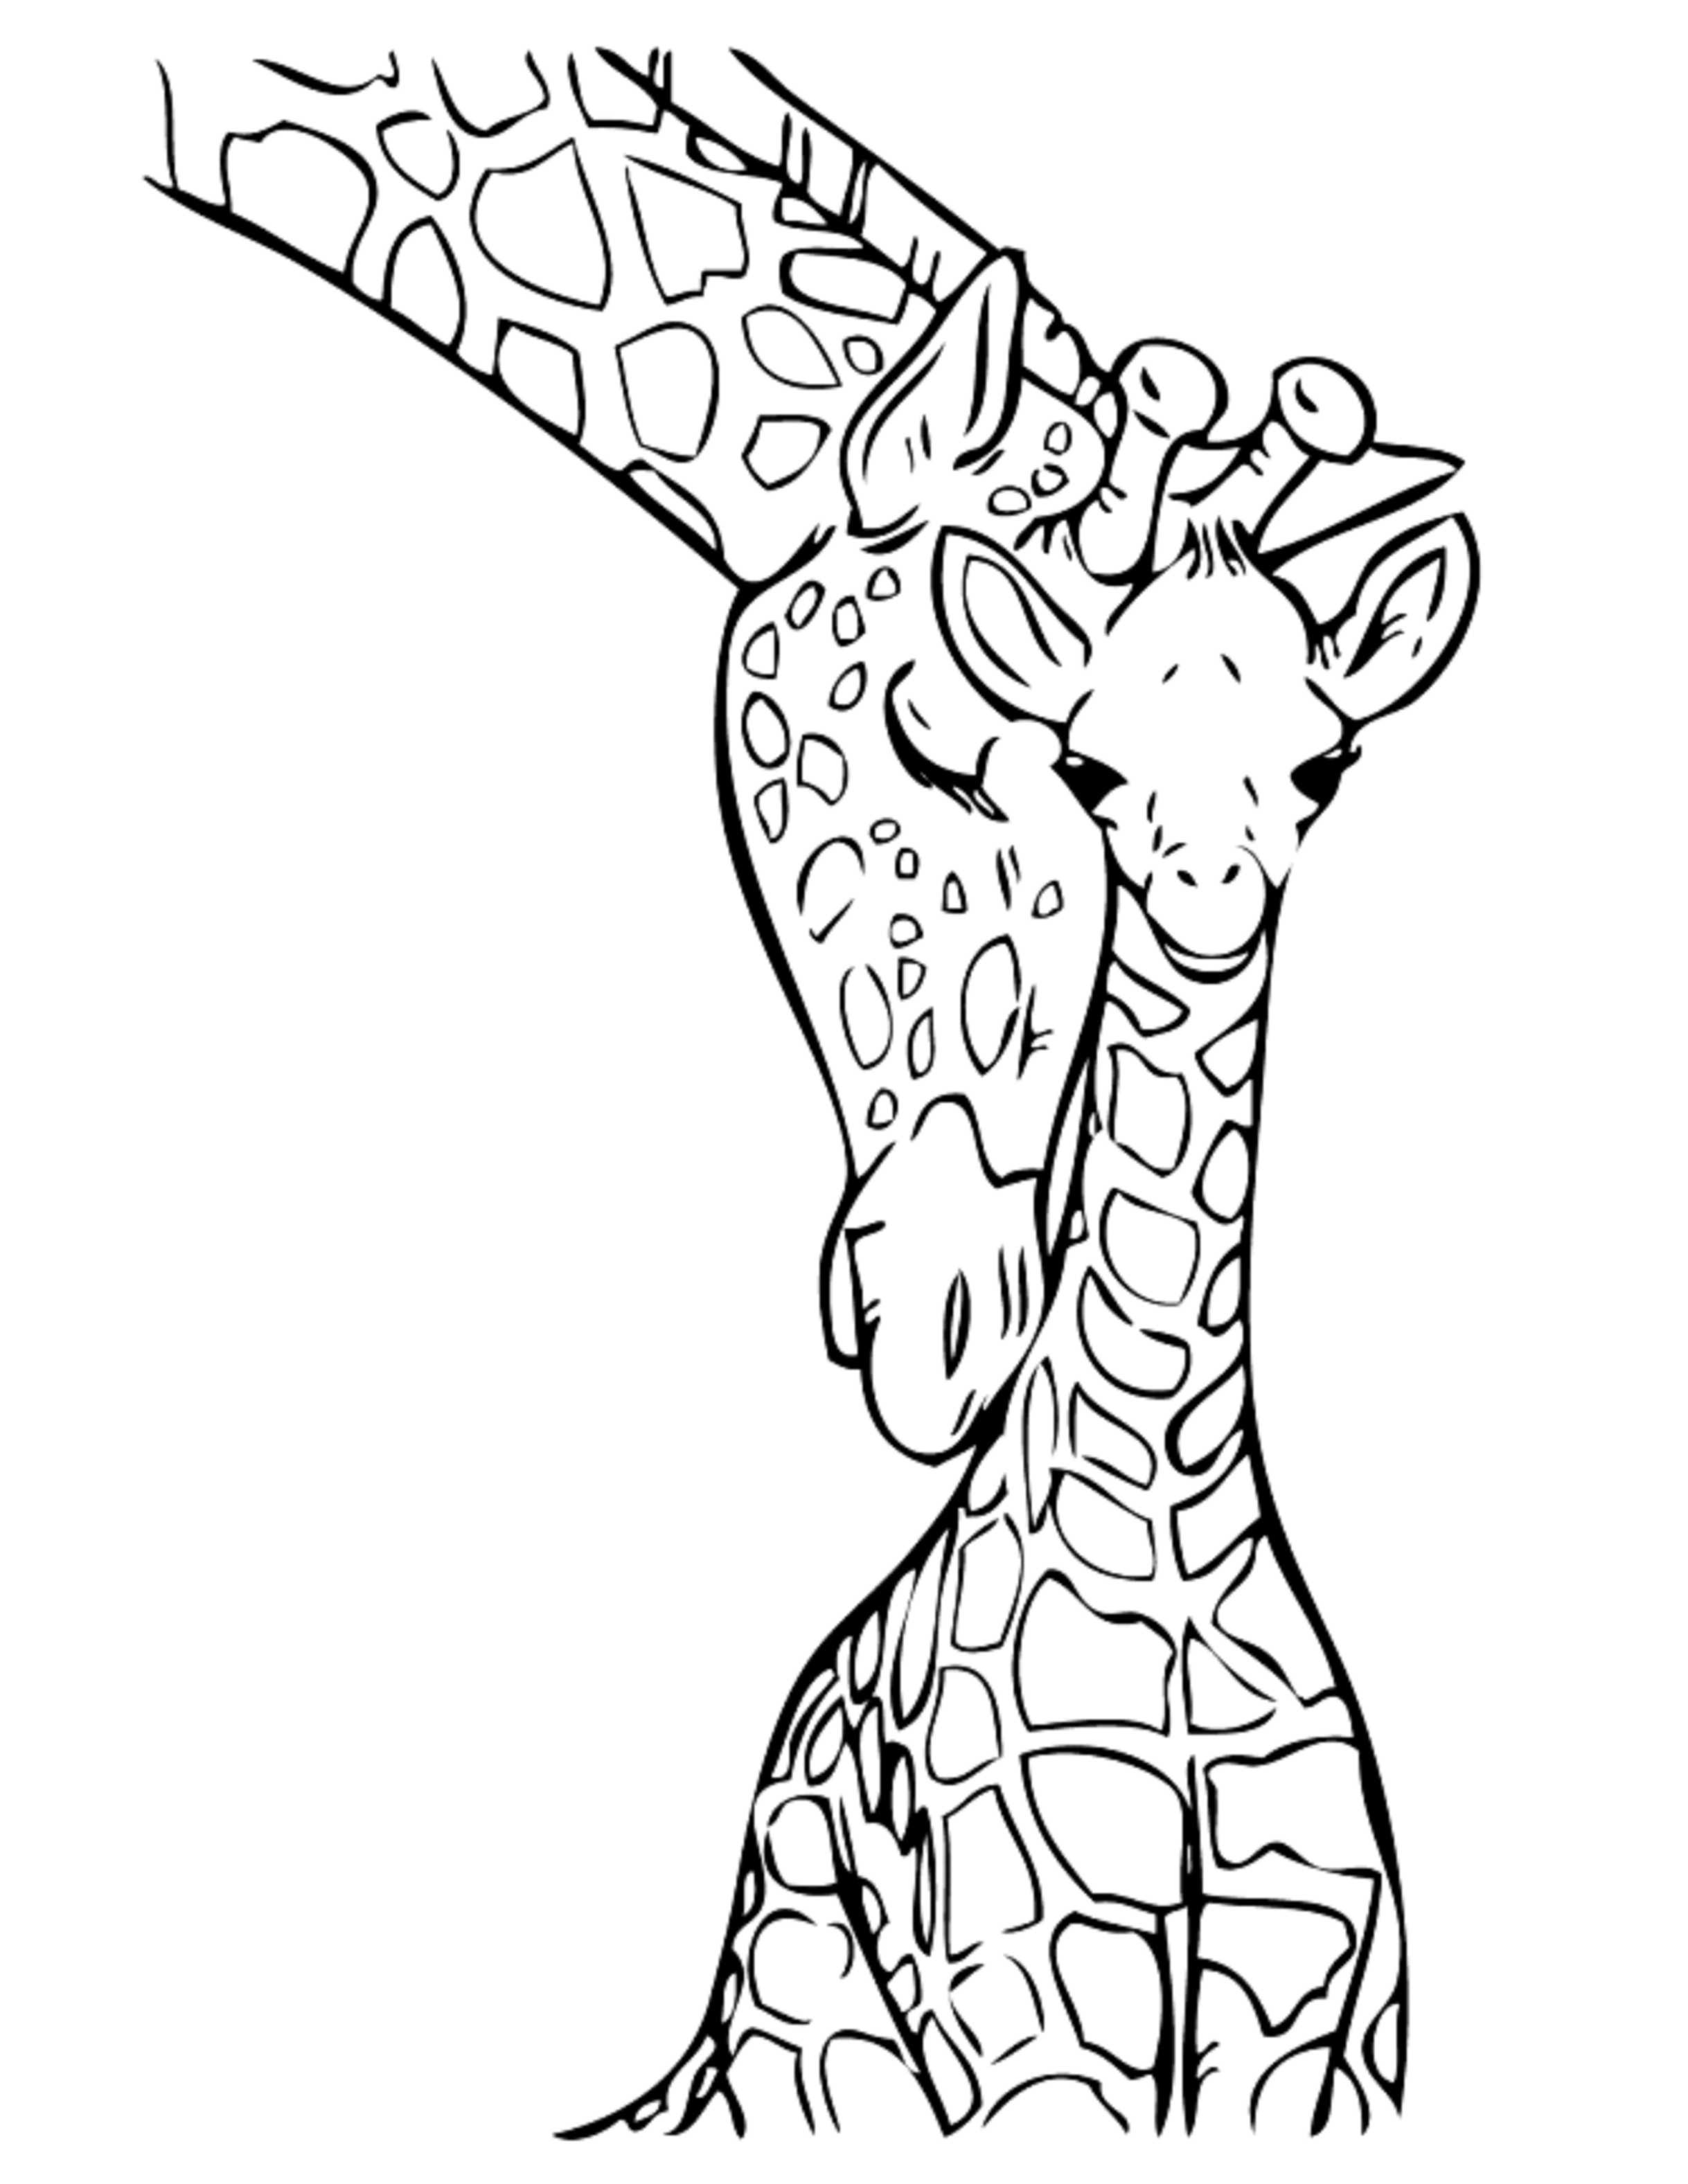 2437x3154 Giraffe Animals Coloring Pages For Kids Luxury Drawn Giraffe